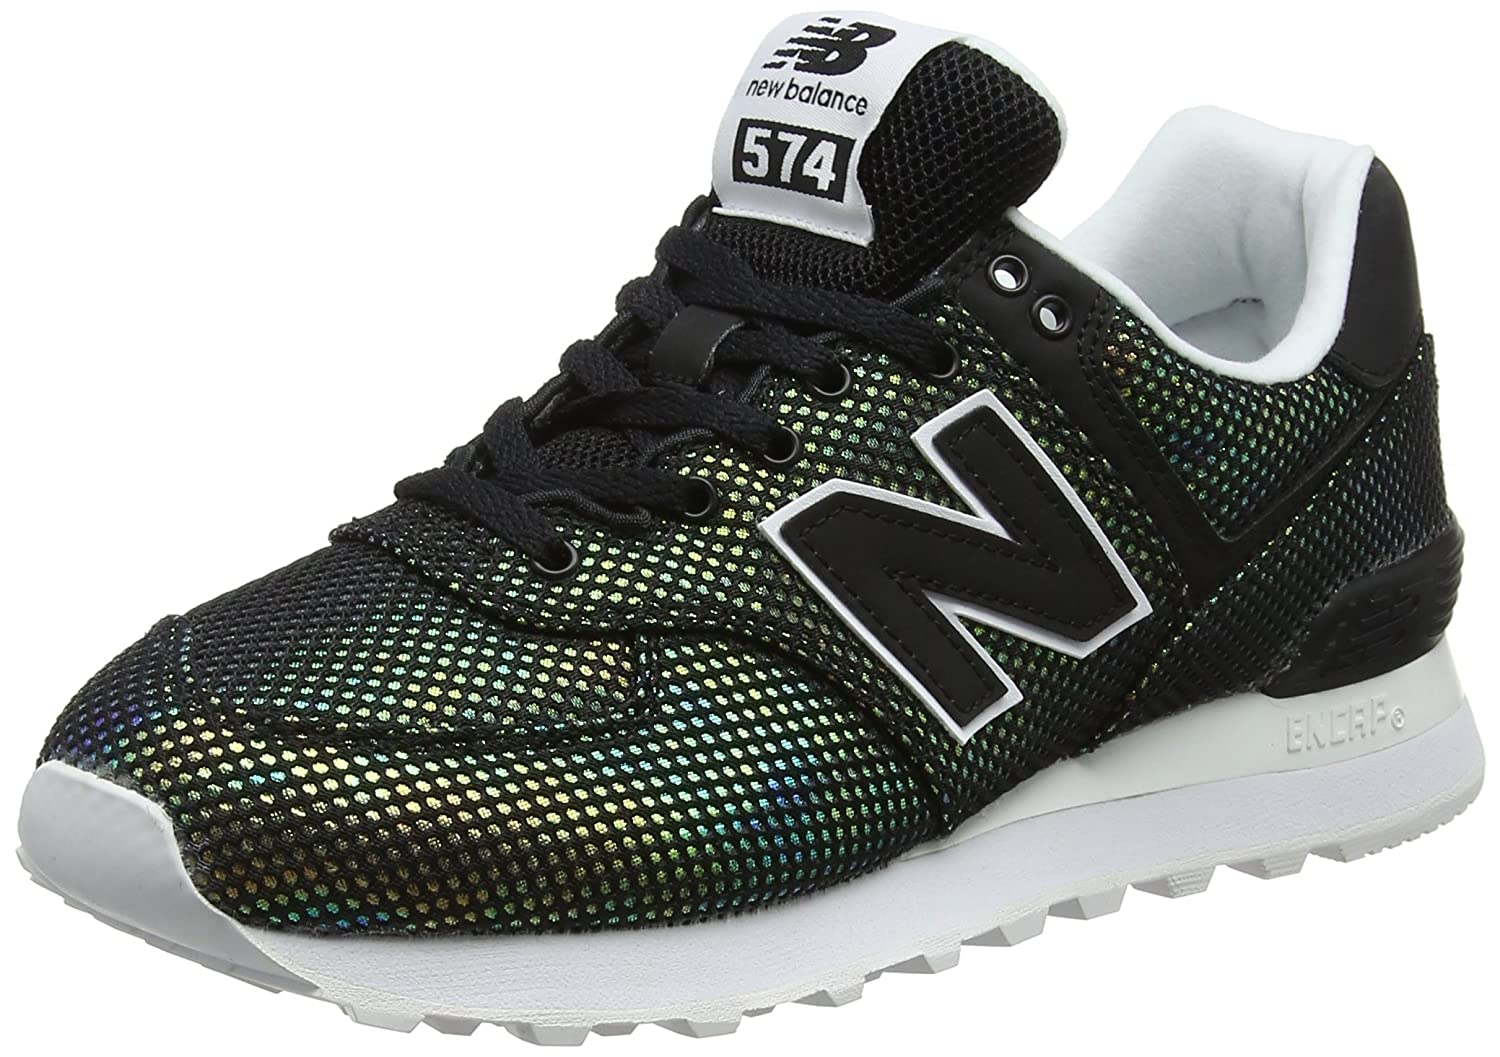 New Balance Women's 574v2 Sneaker B0751GMFYY 6.5 D US|Black/White